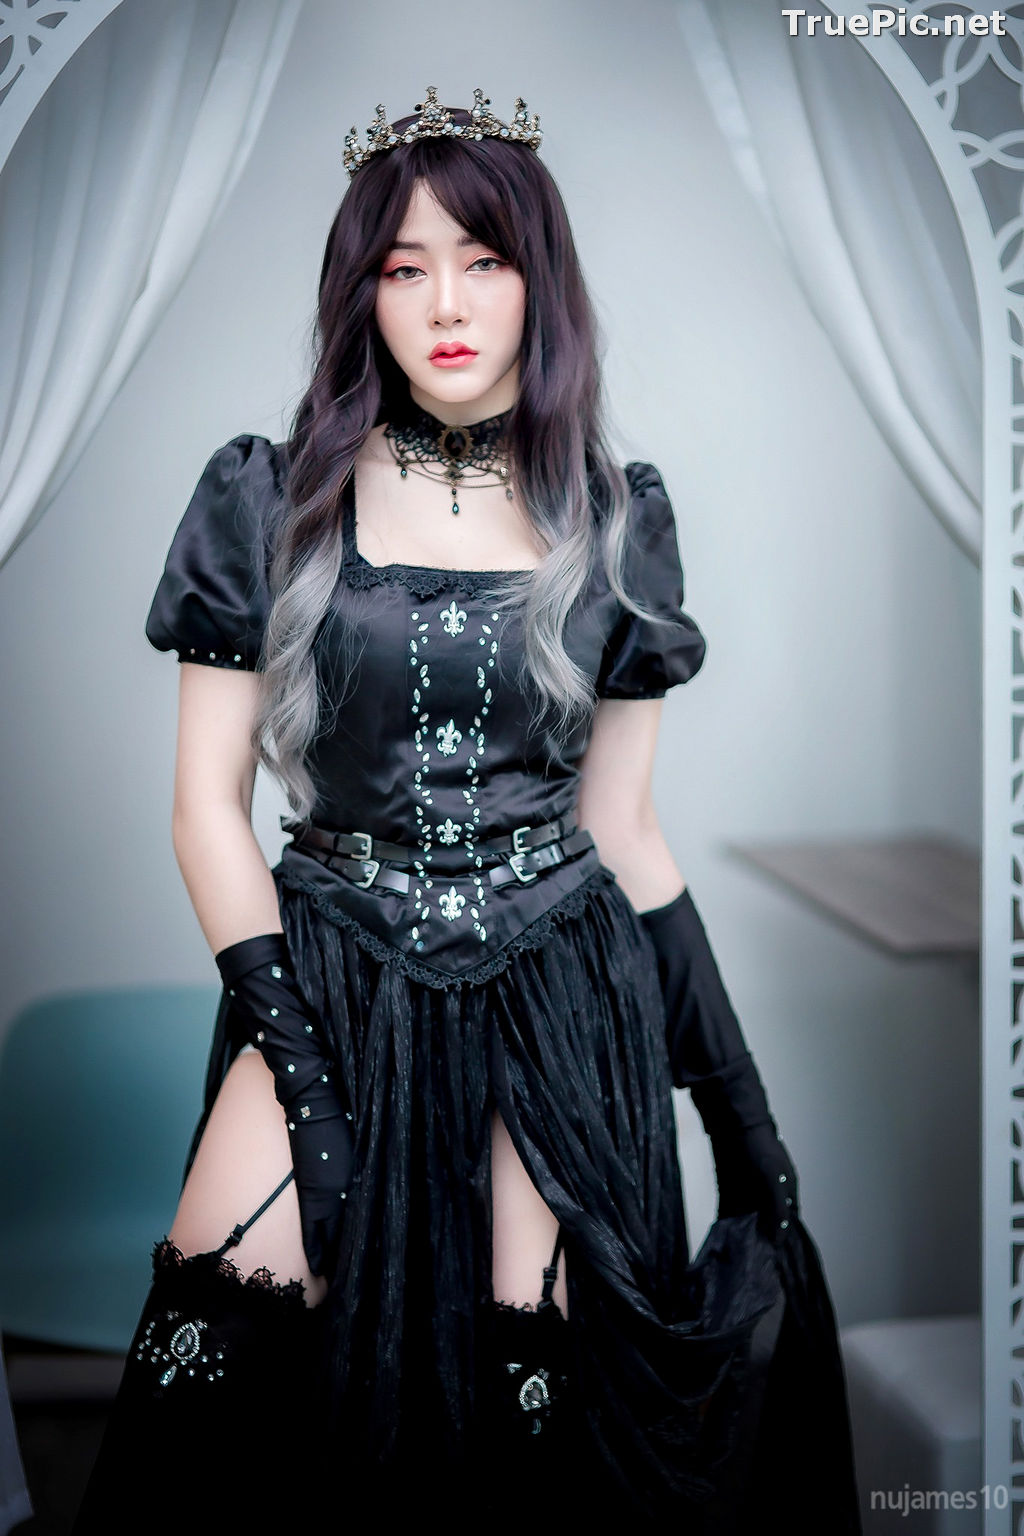 Image Thailand Model - Anchalee Wangwan - Black Princess - TruePic.net - Picture-4